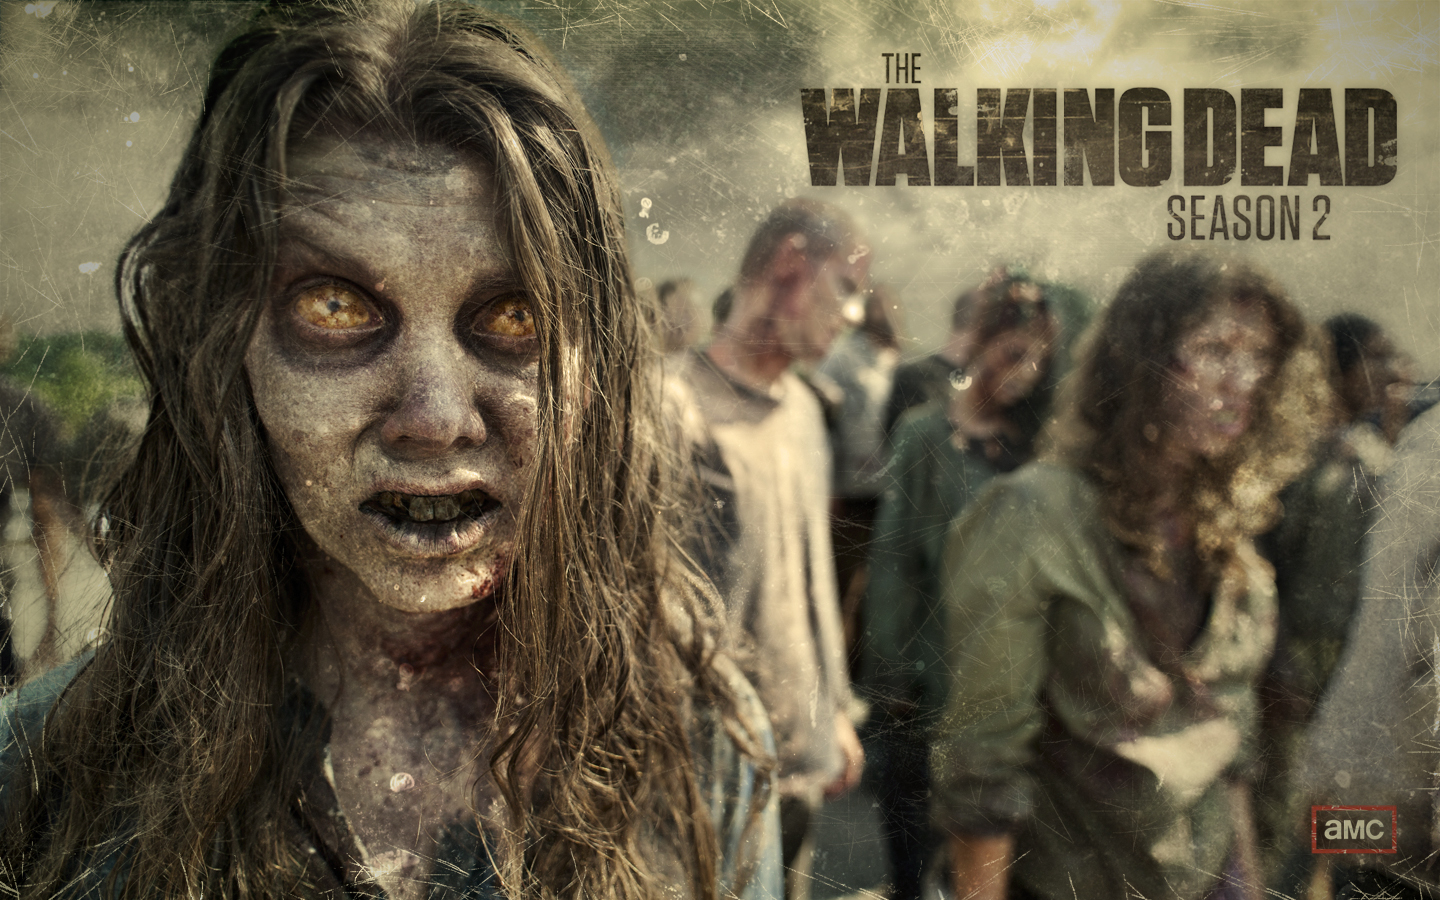 The Walking Dead Season 2 Zombie Wallpaper